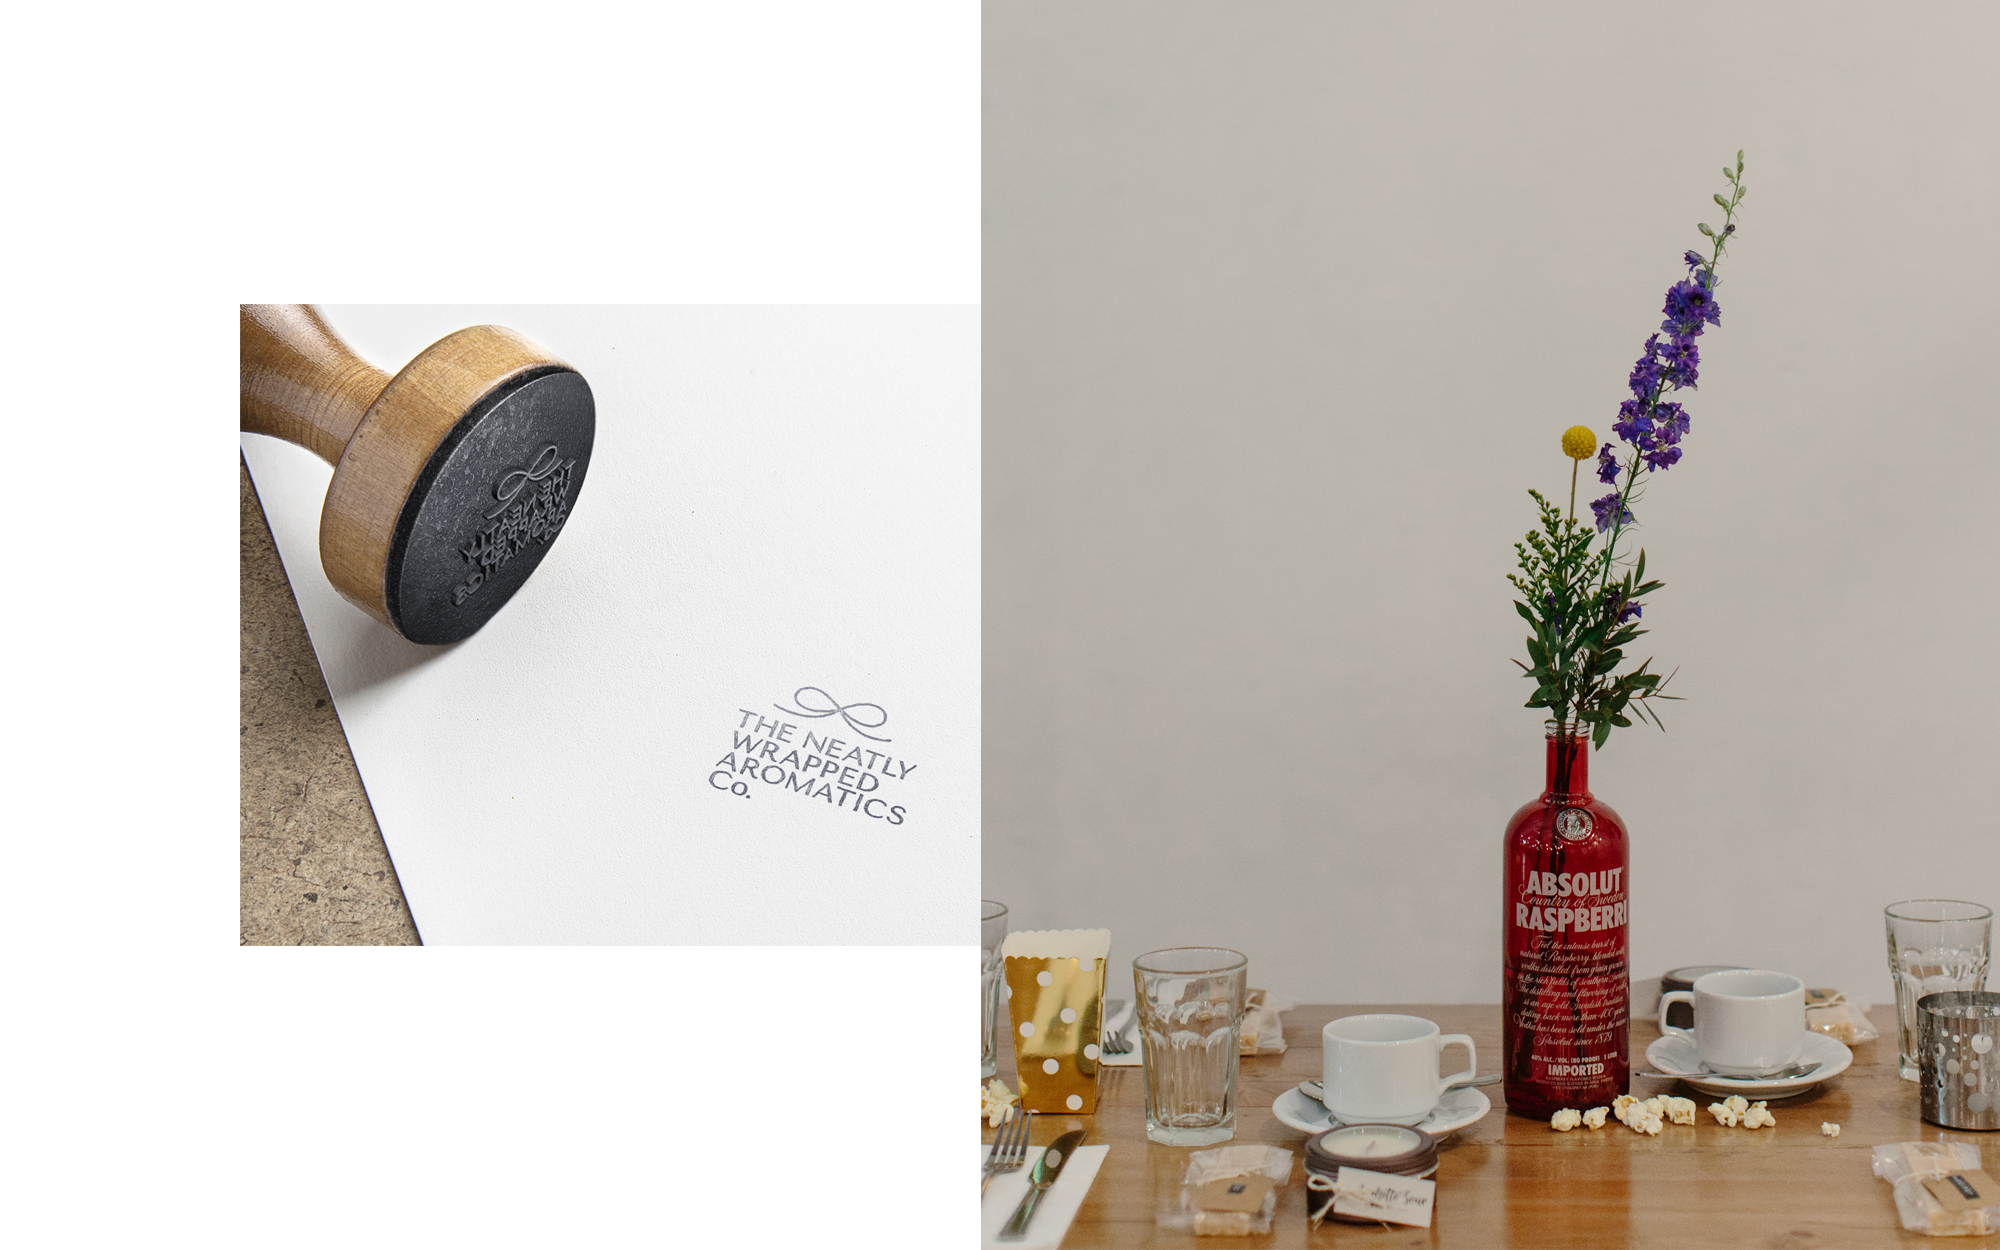 candle-branding-logo-photography-design-glasgow-scotland-marketing-walnut-wasp-neatly-wrapped.png